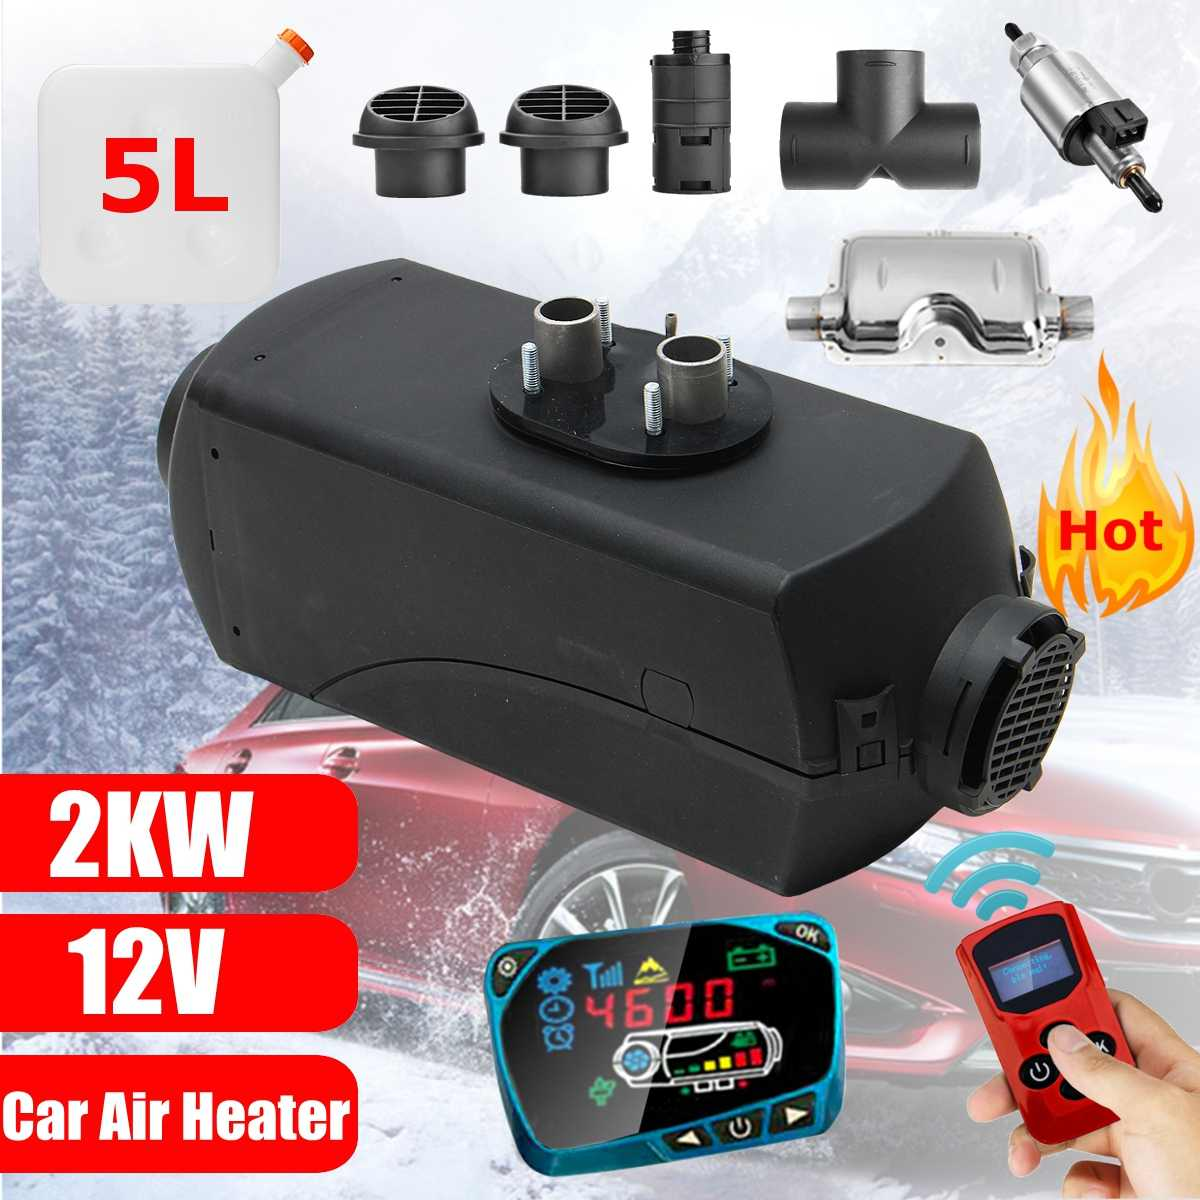 Boats Car Heater Air Diesels Heater Parking,5KW 12V With Remote Control LCD Monitor for RV Trucks Motorhome Trailer